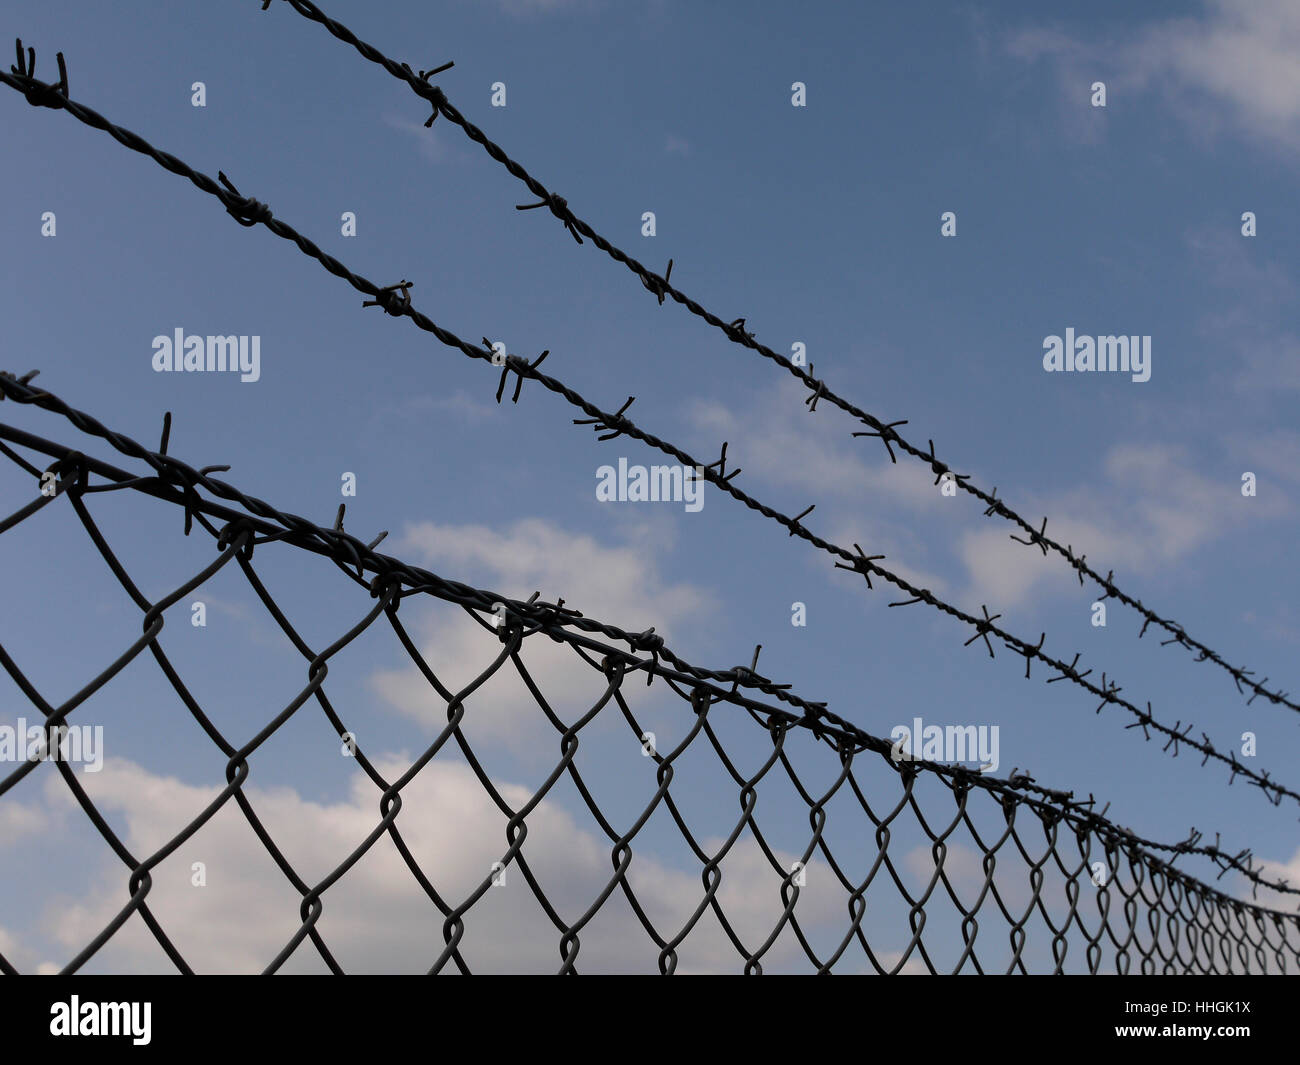 border, wire, fence, fence in, fencing, barbed-wire fence, lock ...